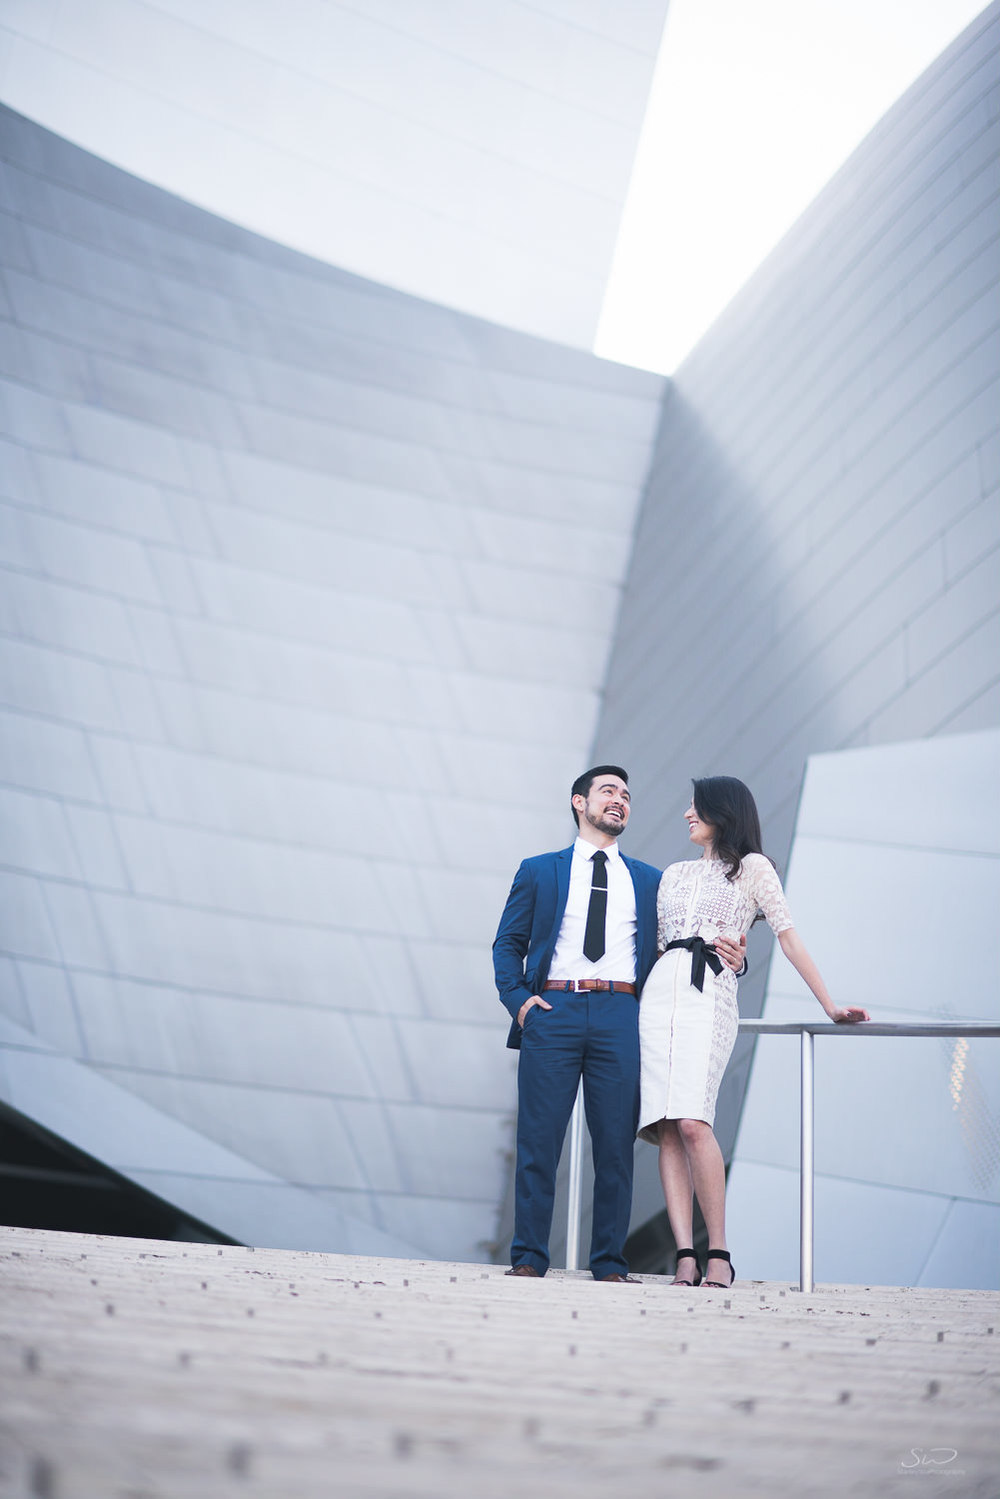 dtla-engagement-wedding-walt-disney-1.jpg